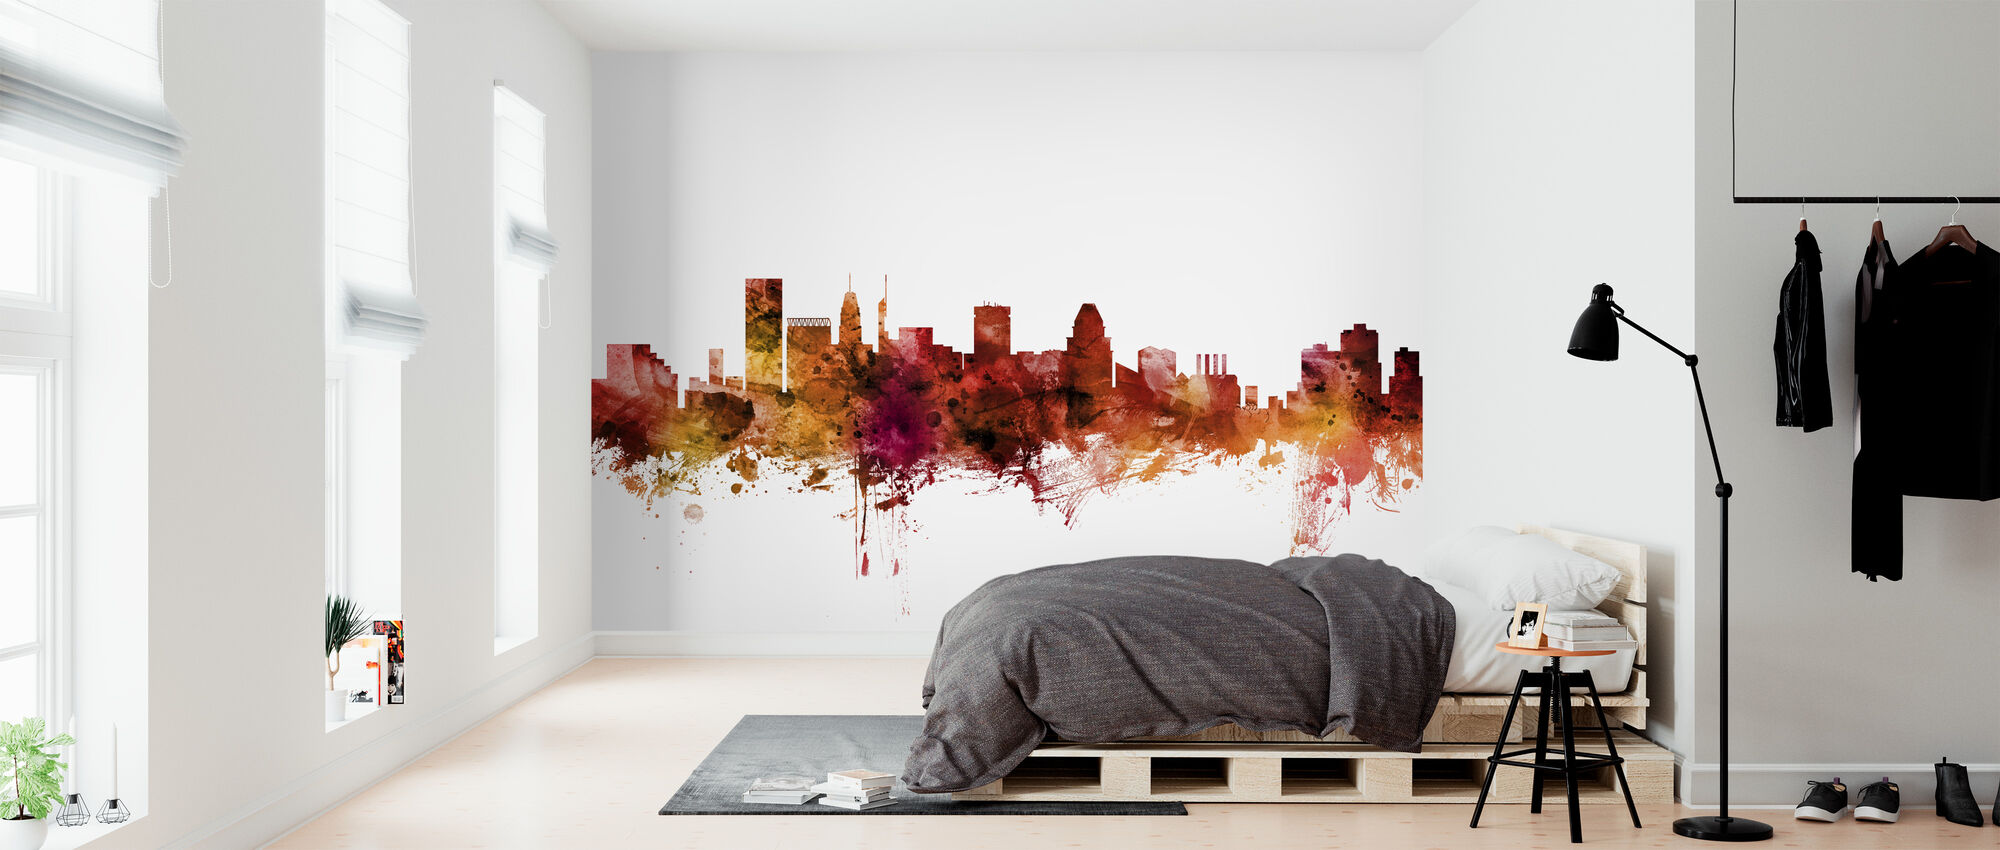 Baltimore Maryland Skyline - Wallpaper - Bedroom